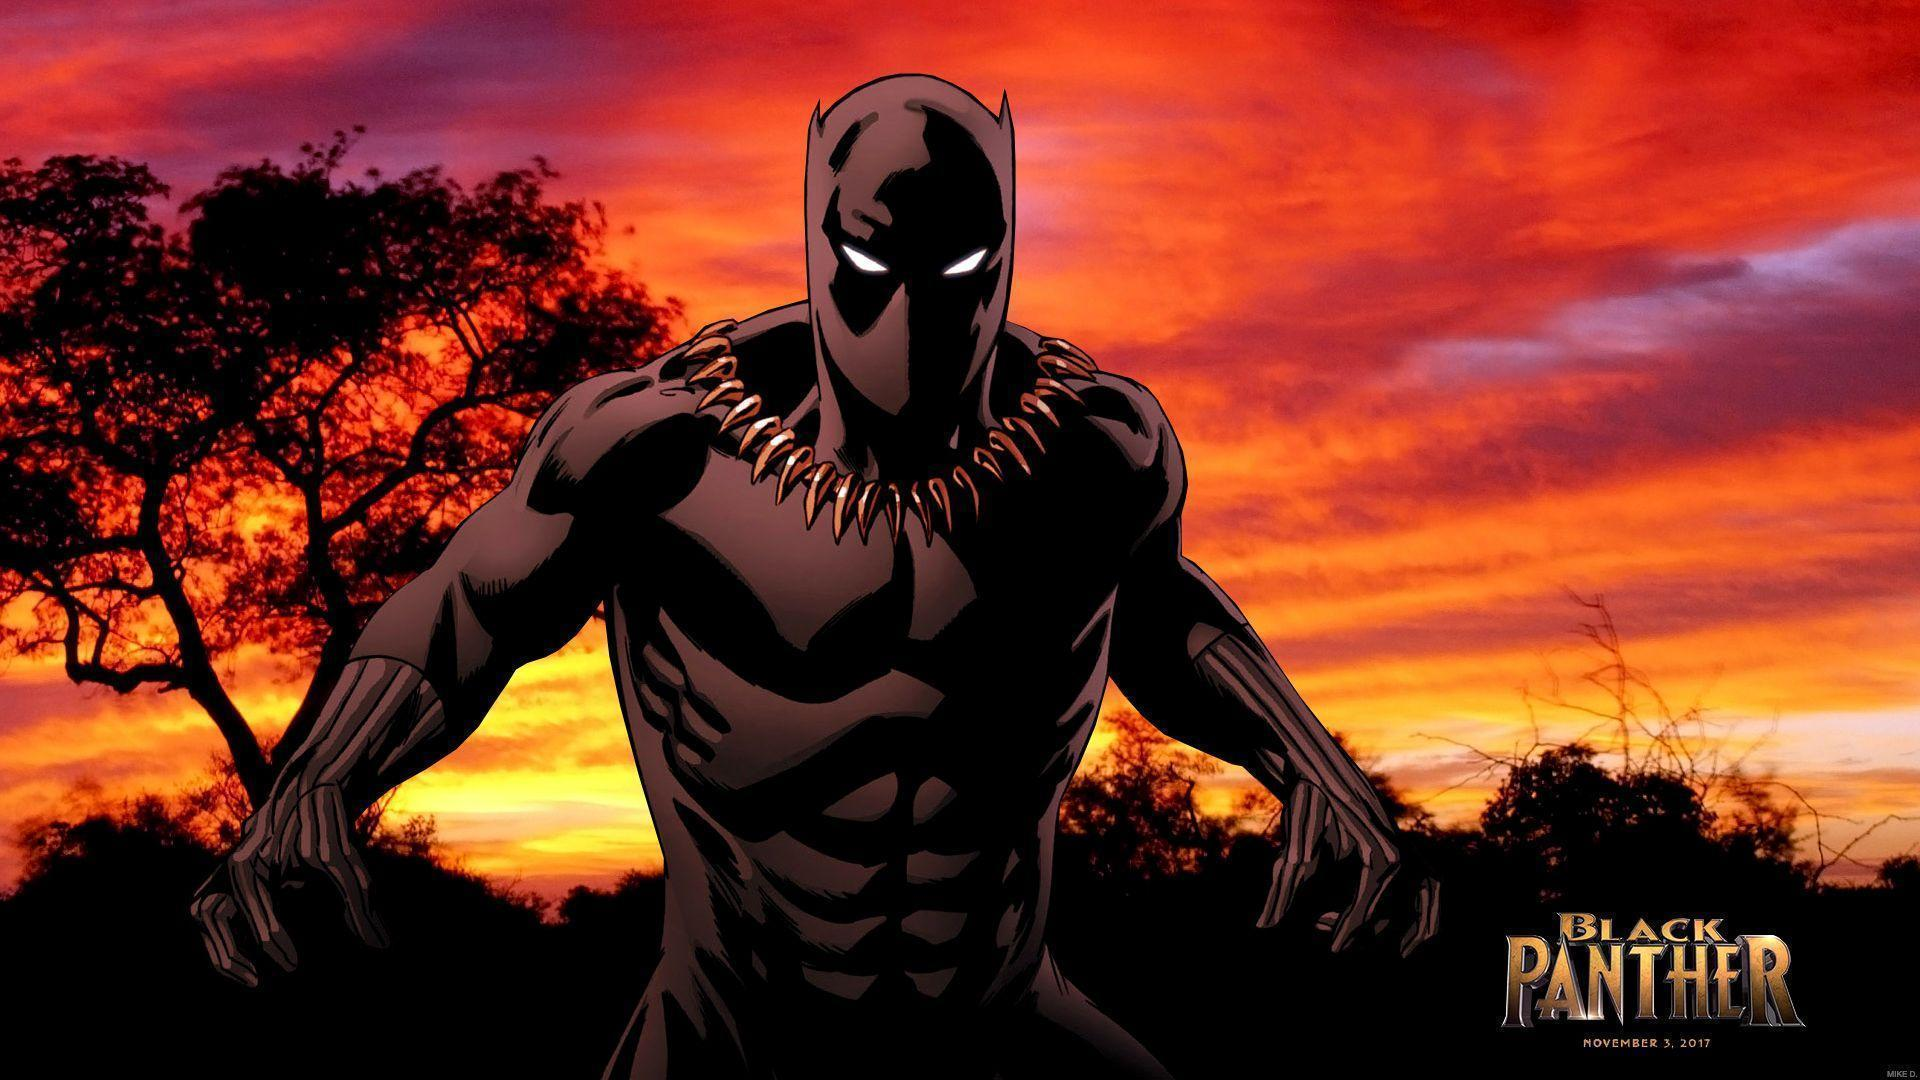 Collection of Black Panther Wallpapers Marvel on HDWallpapers